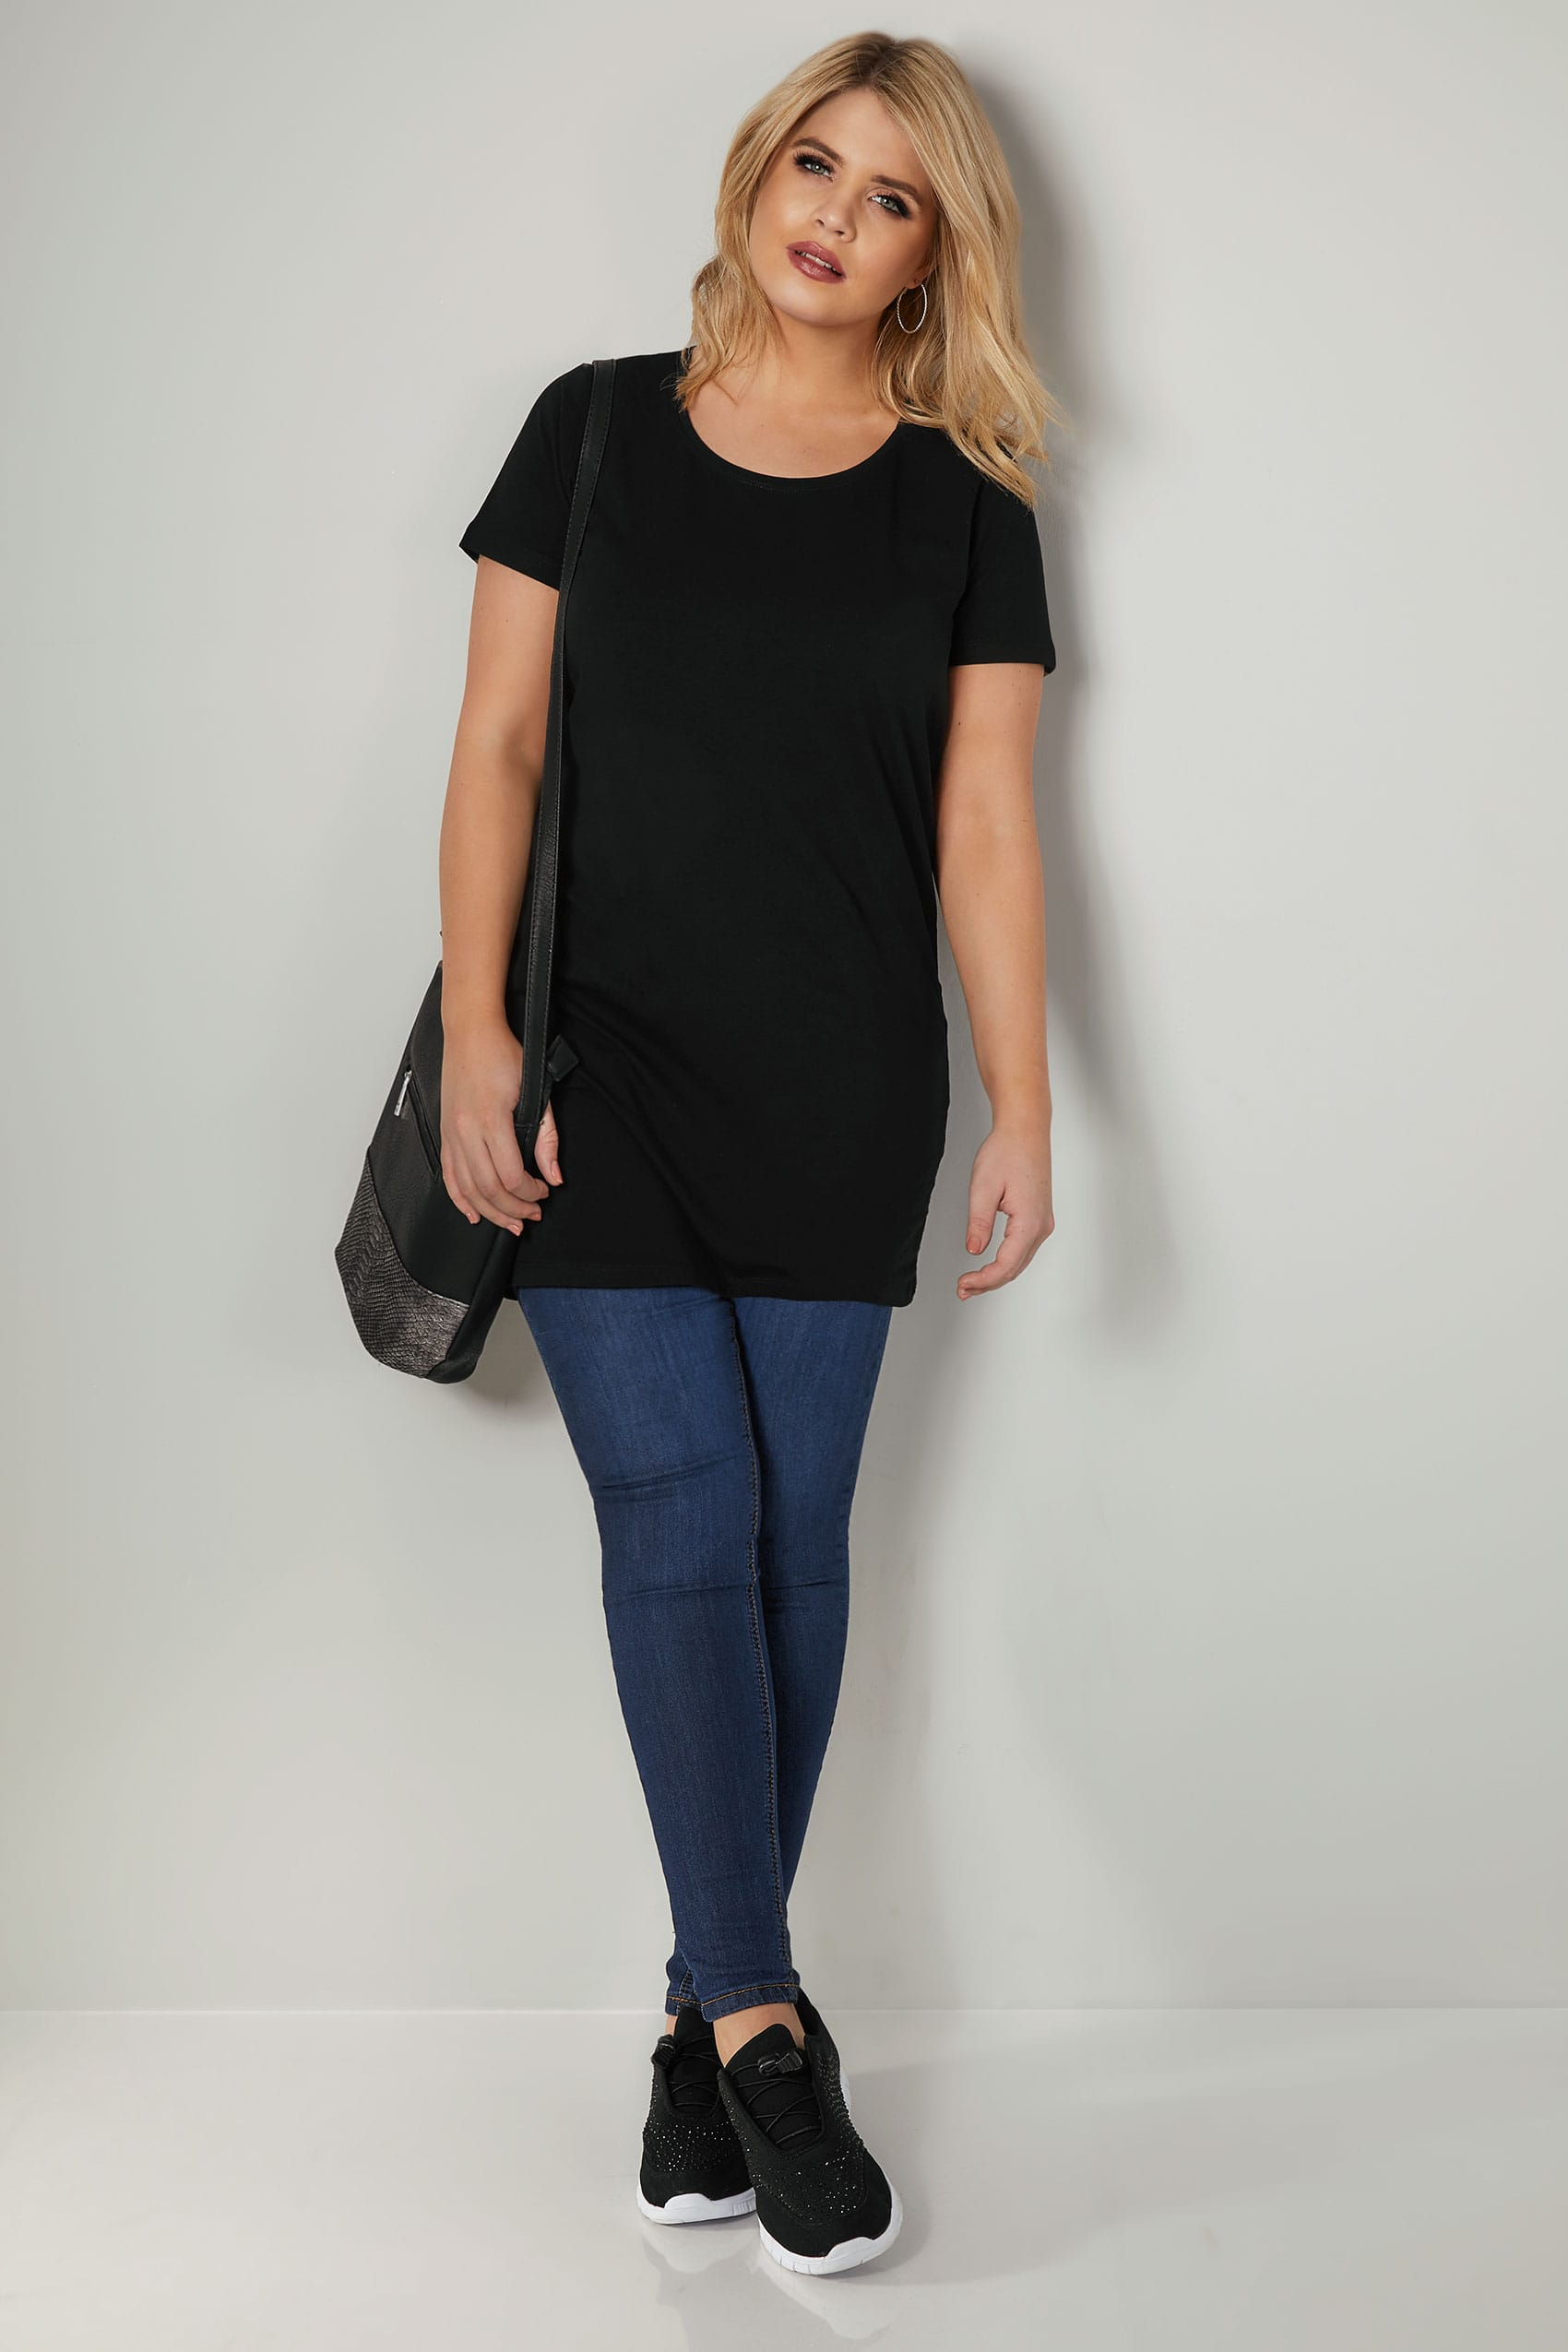 black longline t shirt with scooped neck plus size 16 to 36. Black Bedroom Furniture Sets. Home Design Ideas